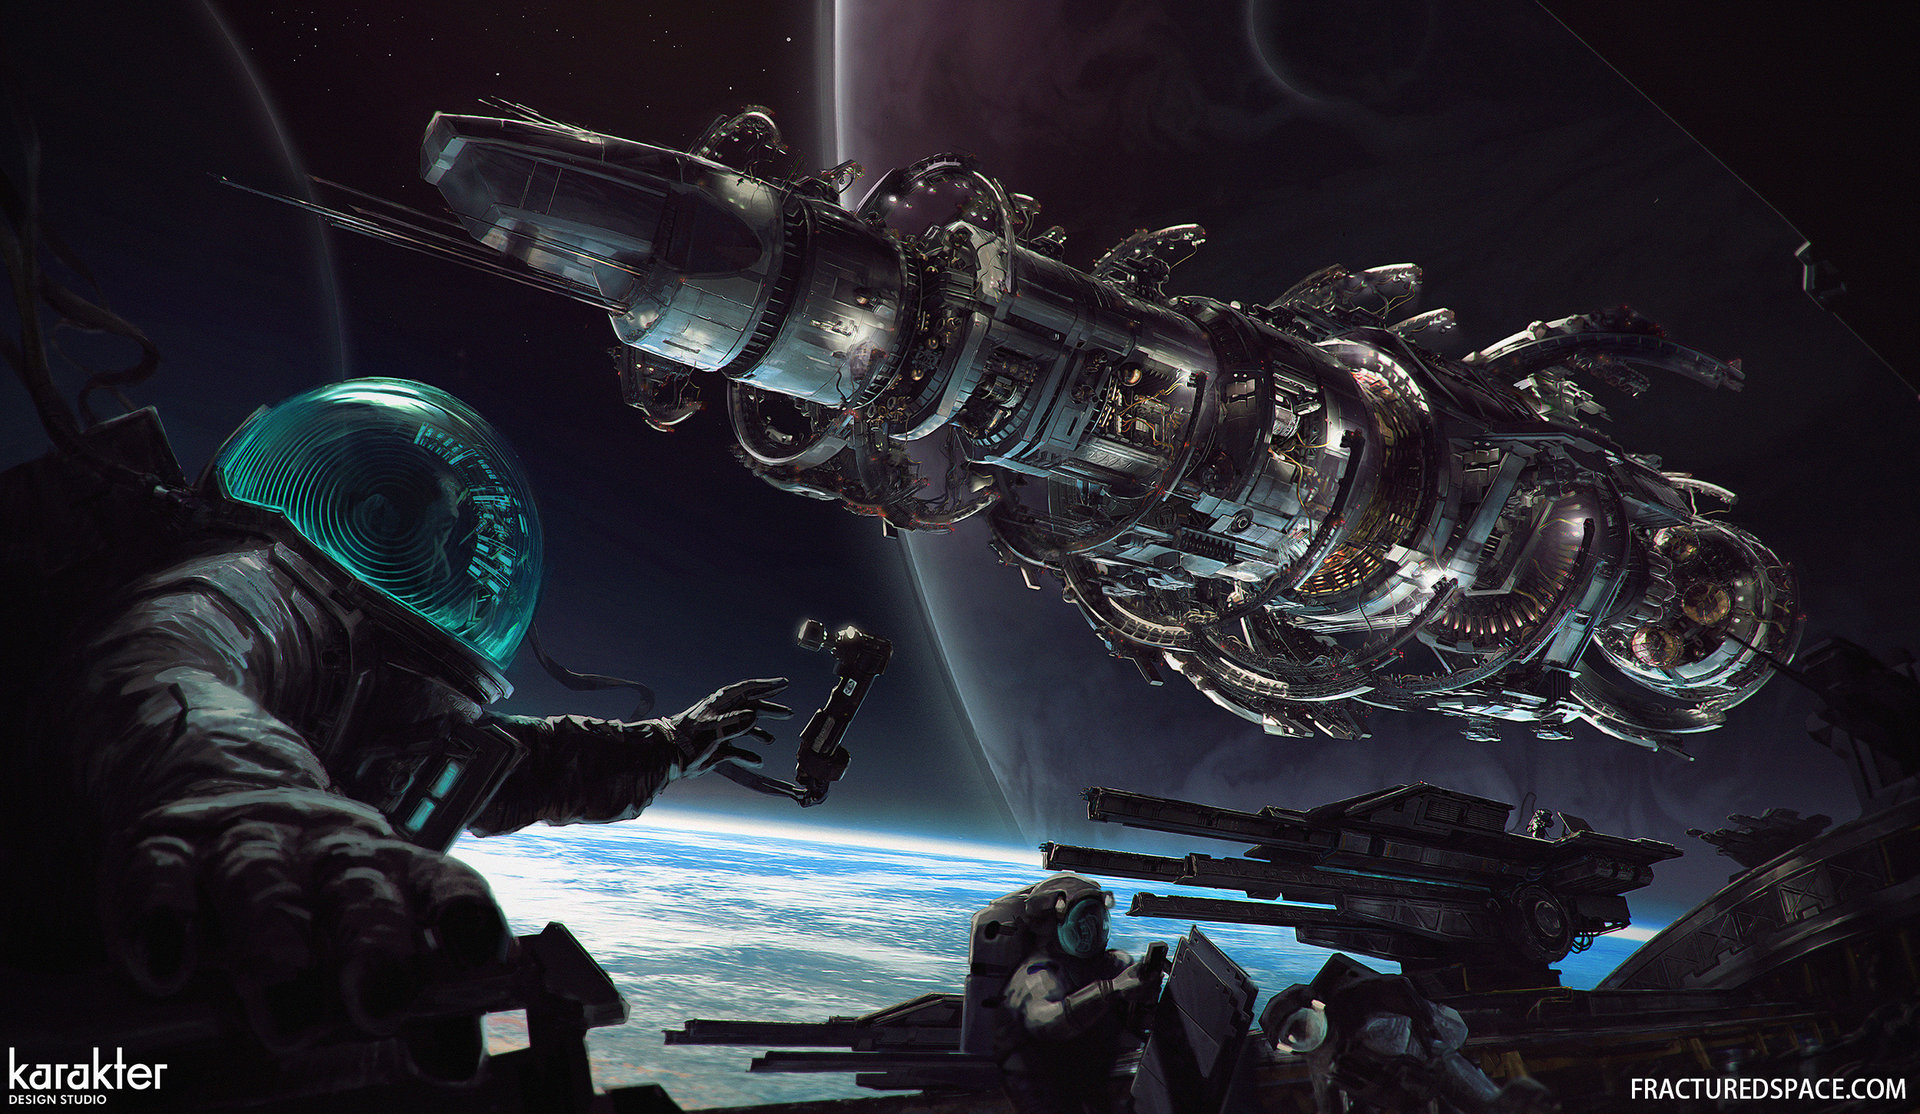 3d Asteroid Wallpaper The Futuristic Concept Art Of Mike Hill Digital Sci Fi